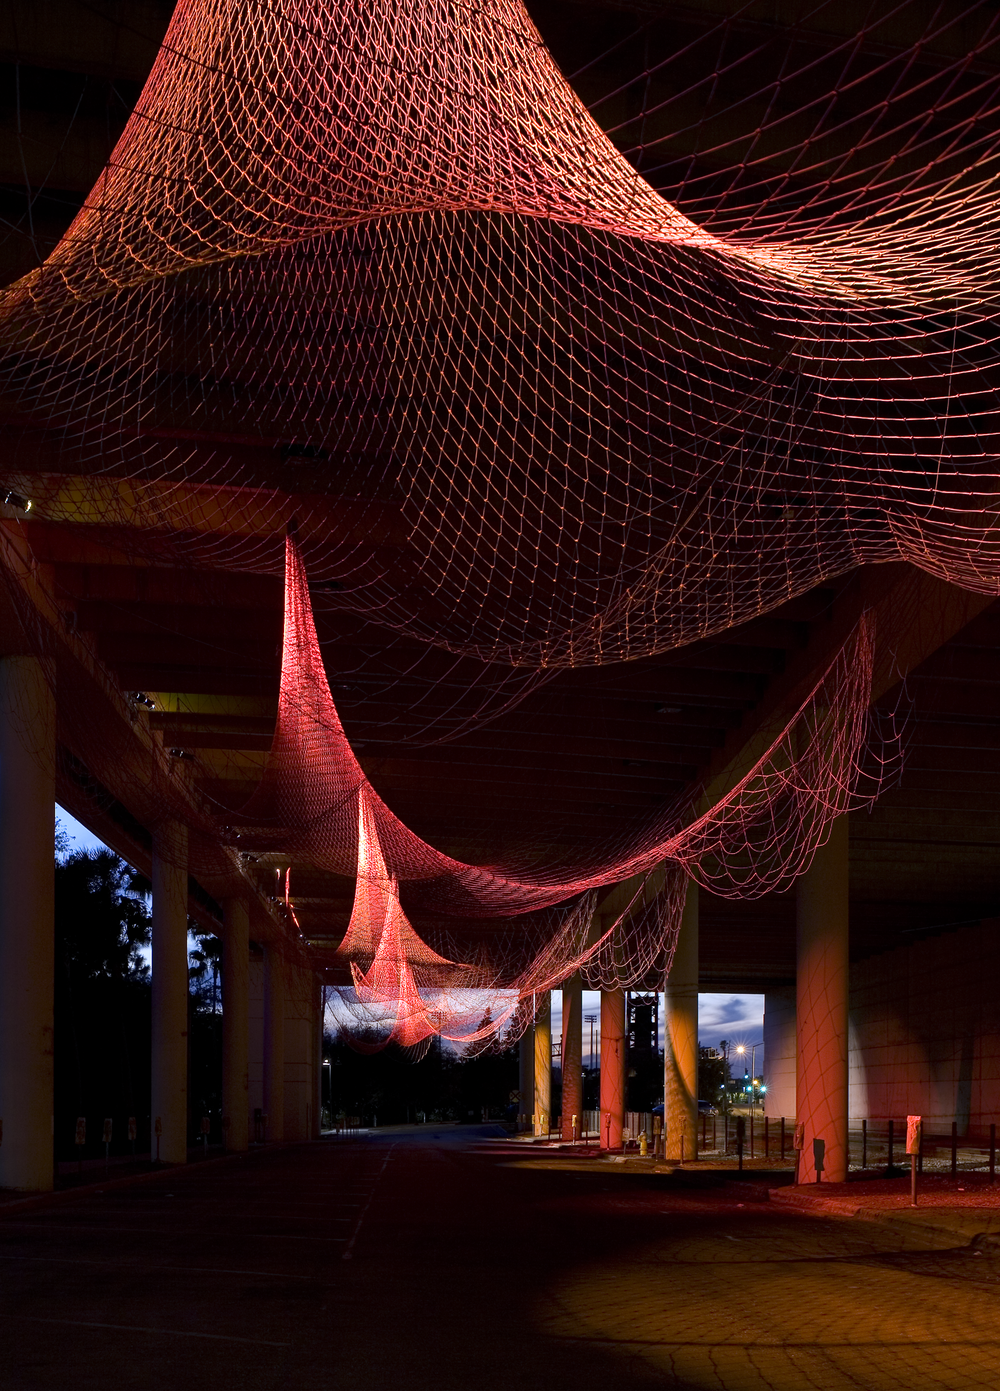 TAM_Echelman_PhotoGeorgeCott_1222-7_GJH_cr.png